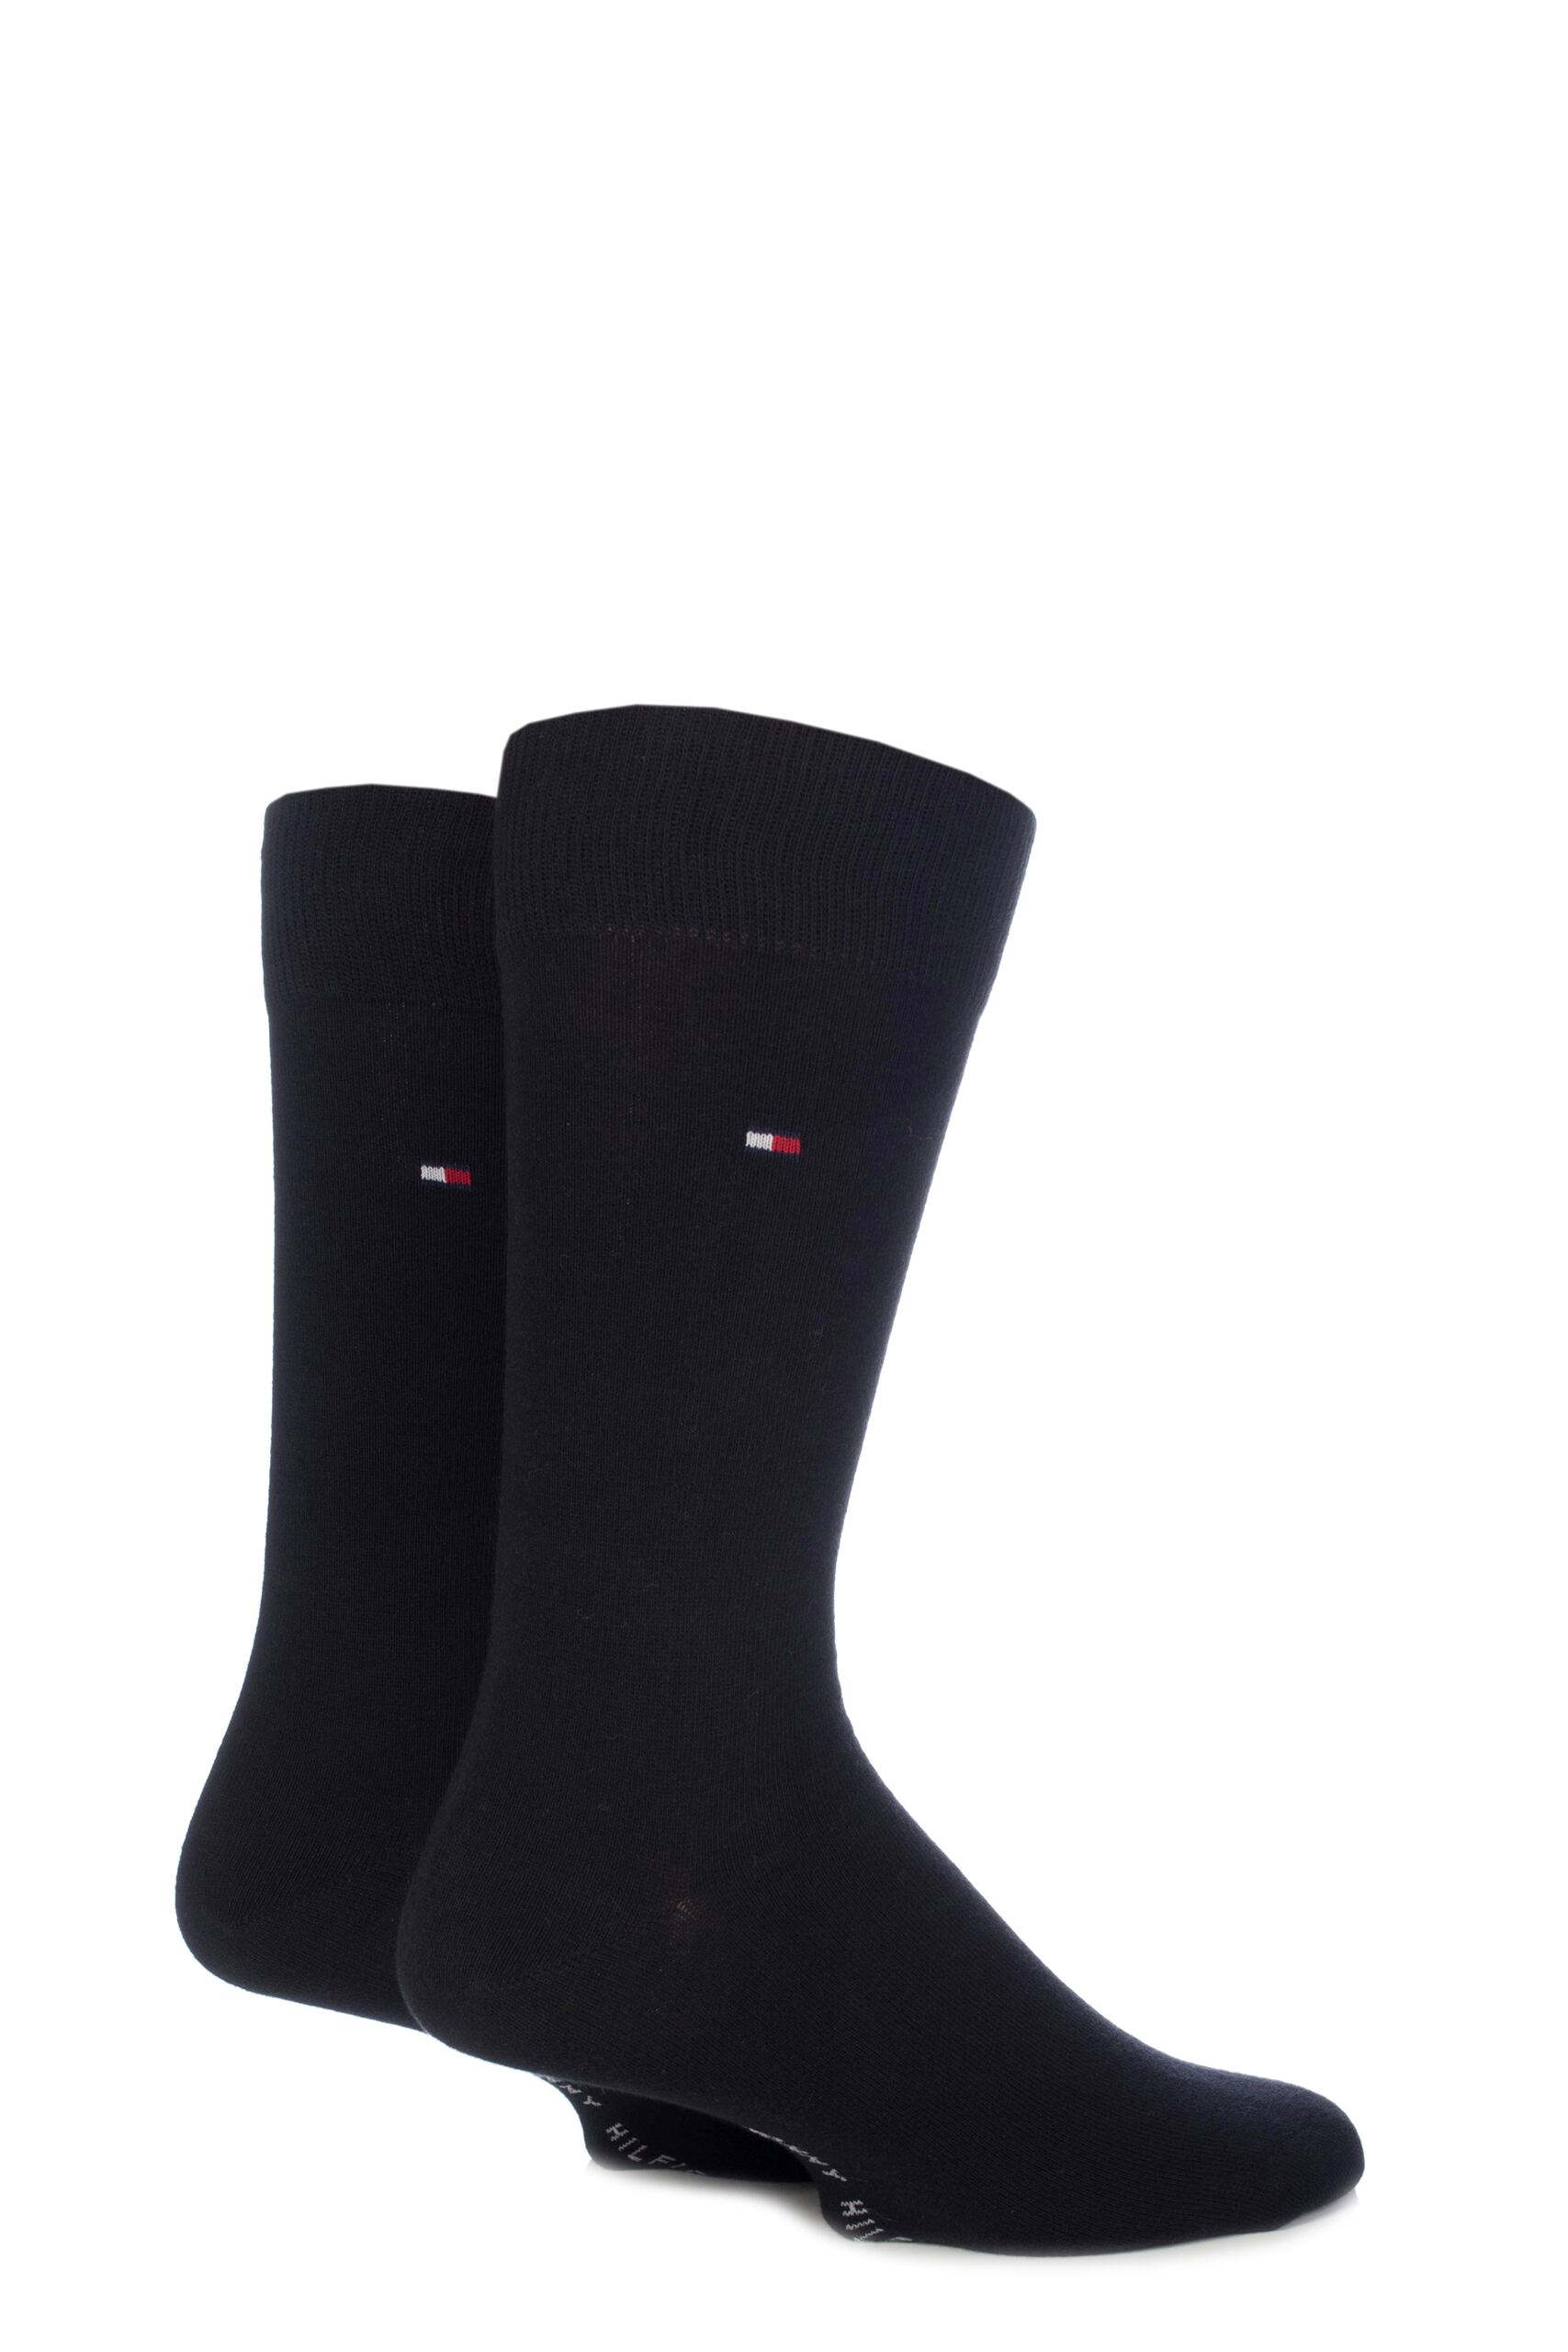 Image of 2 Pair Black Classic Plain Cotton Socks Men's 6-8 Mens - Tommy Hilfiger